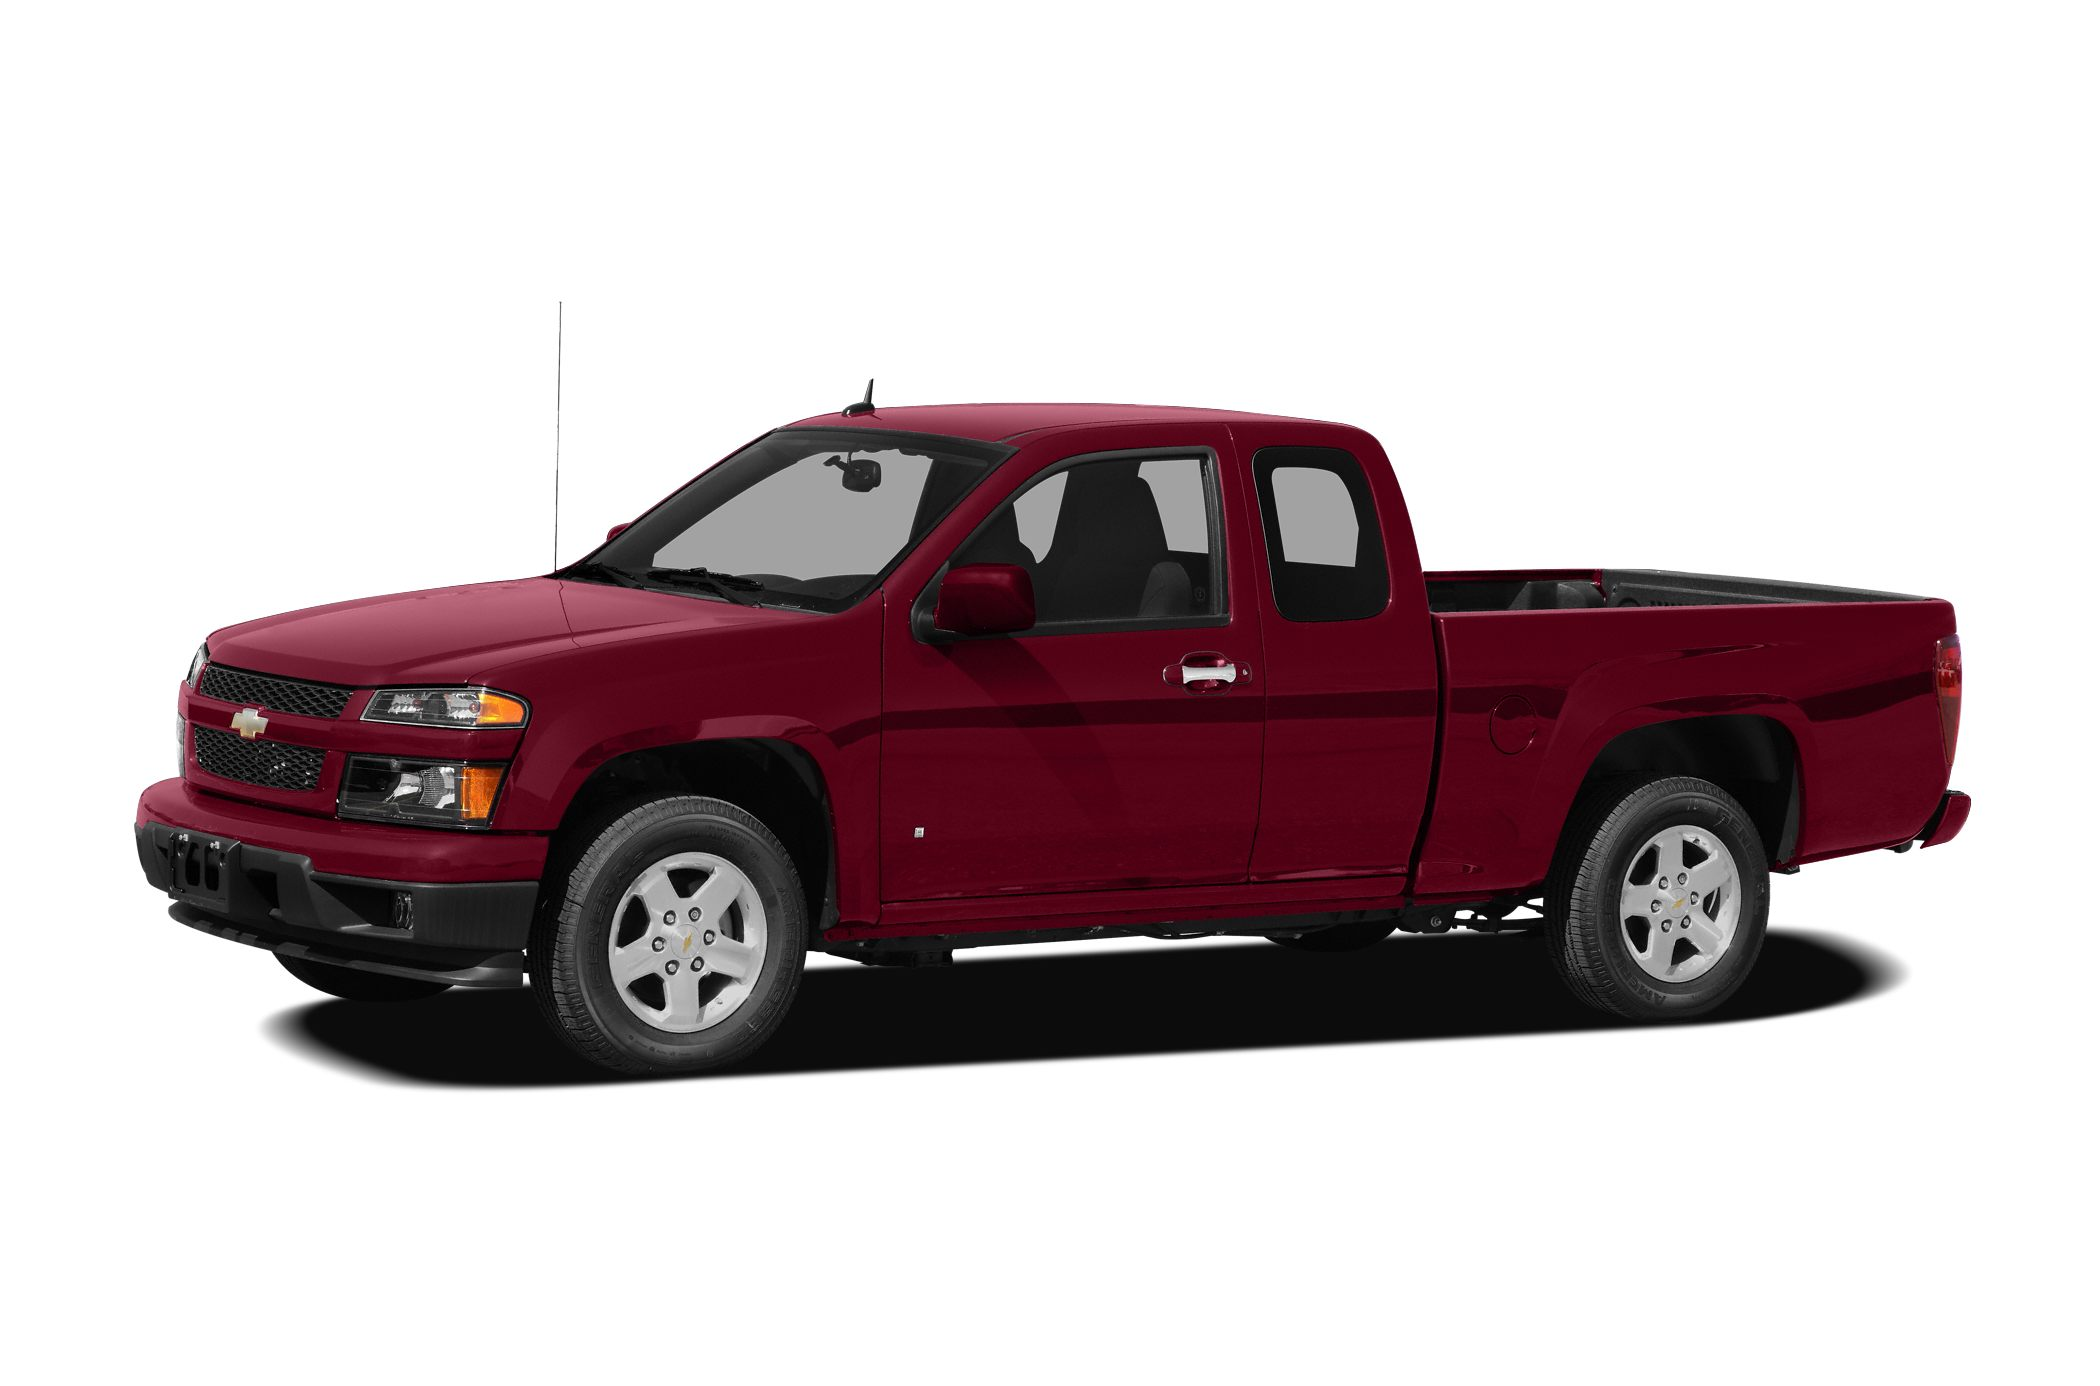 2010 Chevrolet Colorado 1LT Extended Cab Pickup for sale in Fullerton for $13,999 with 39,270 miles.